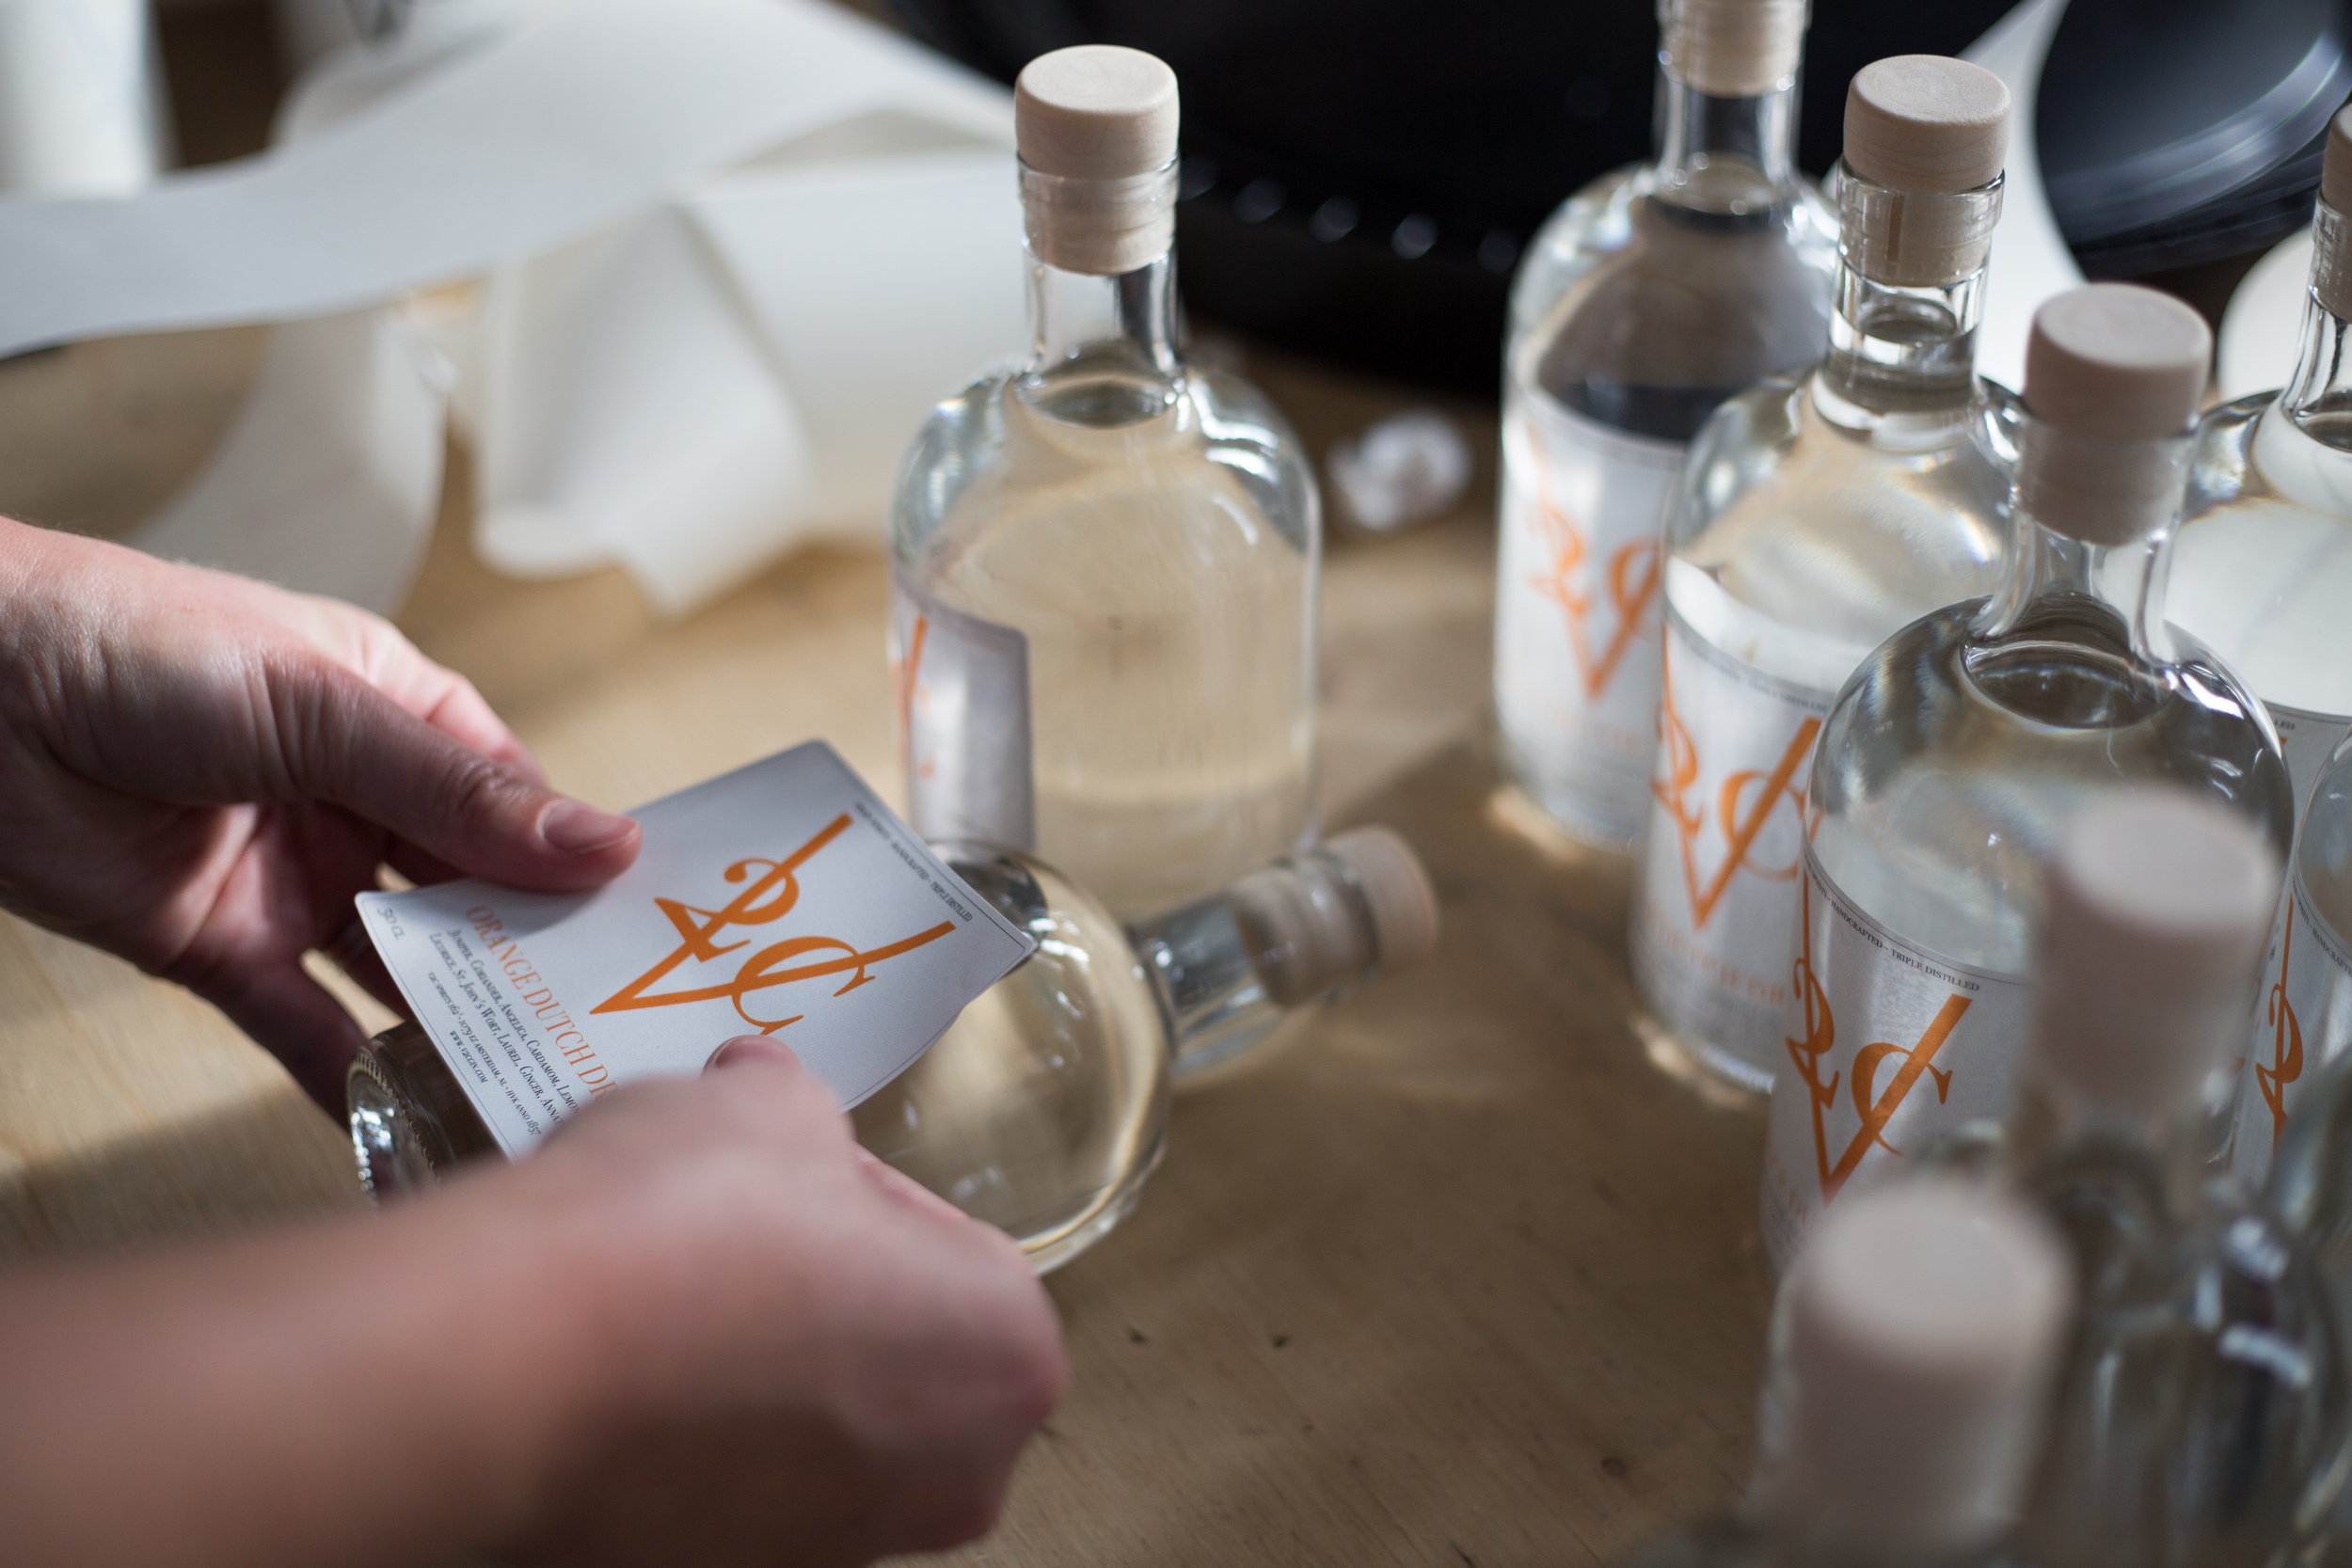 Applying the labels by hand.